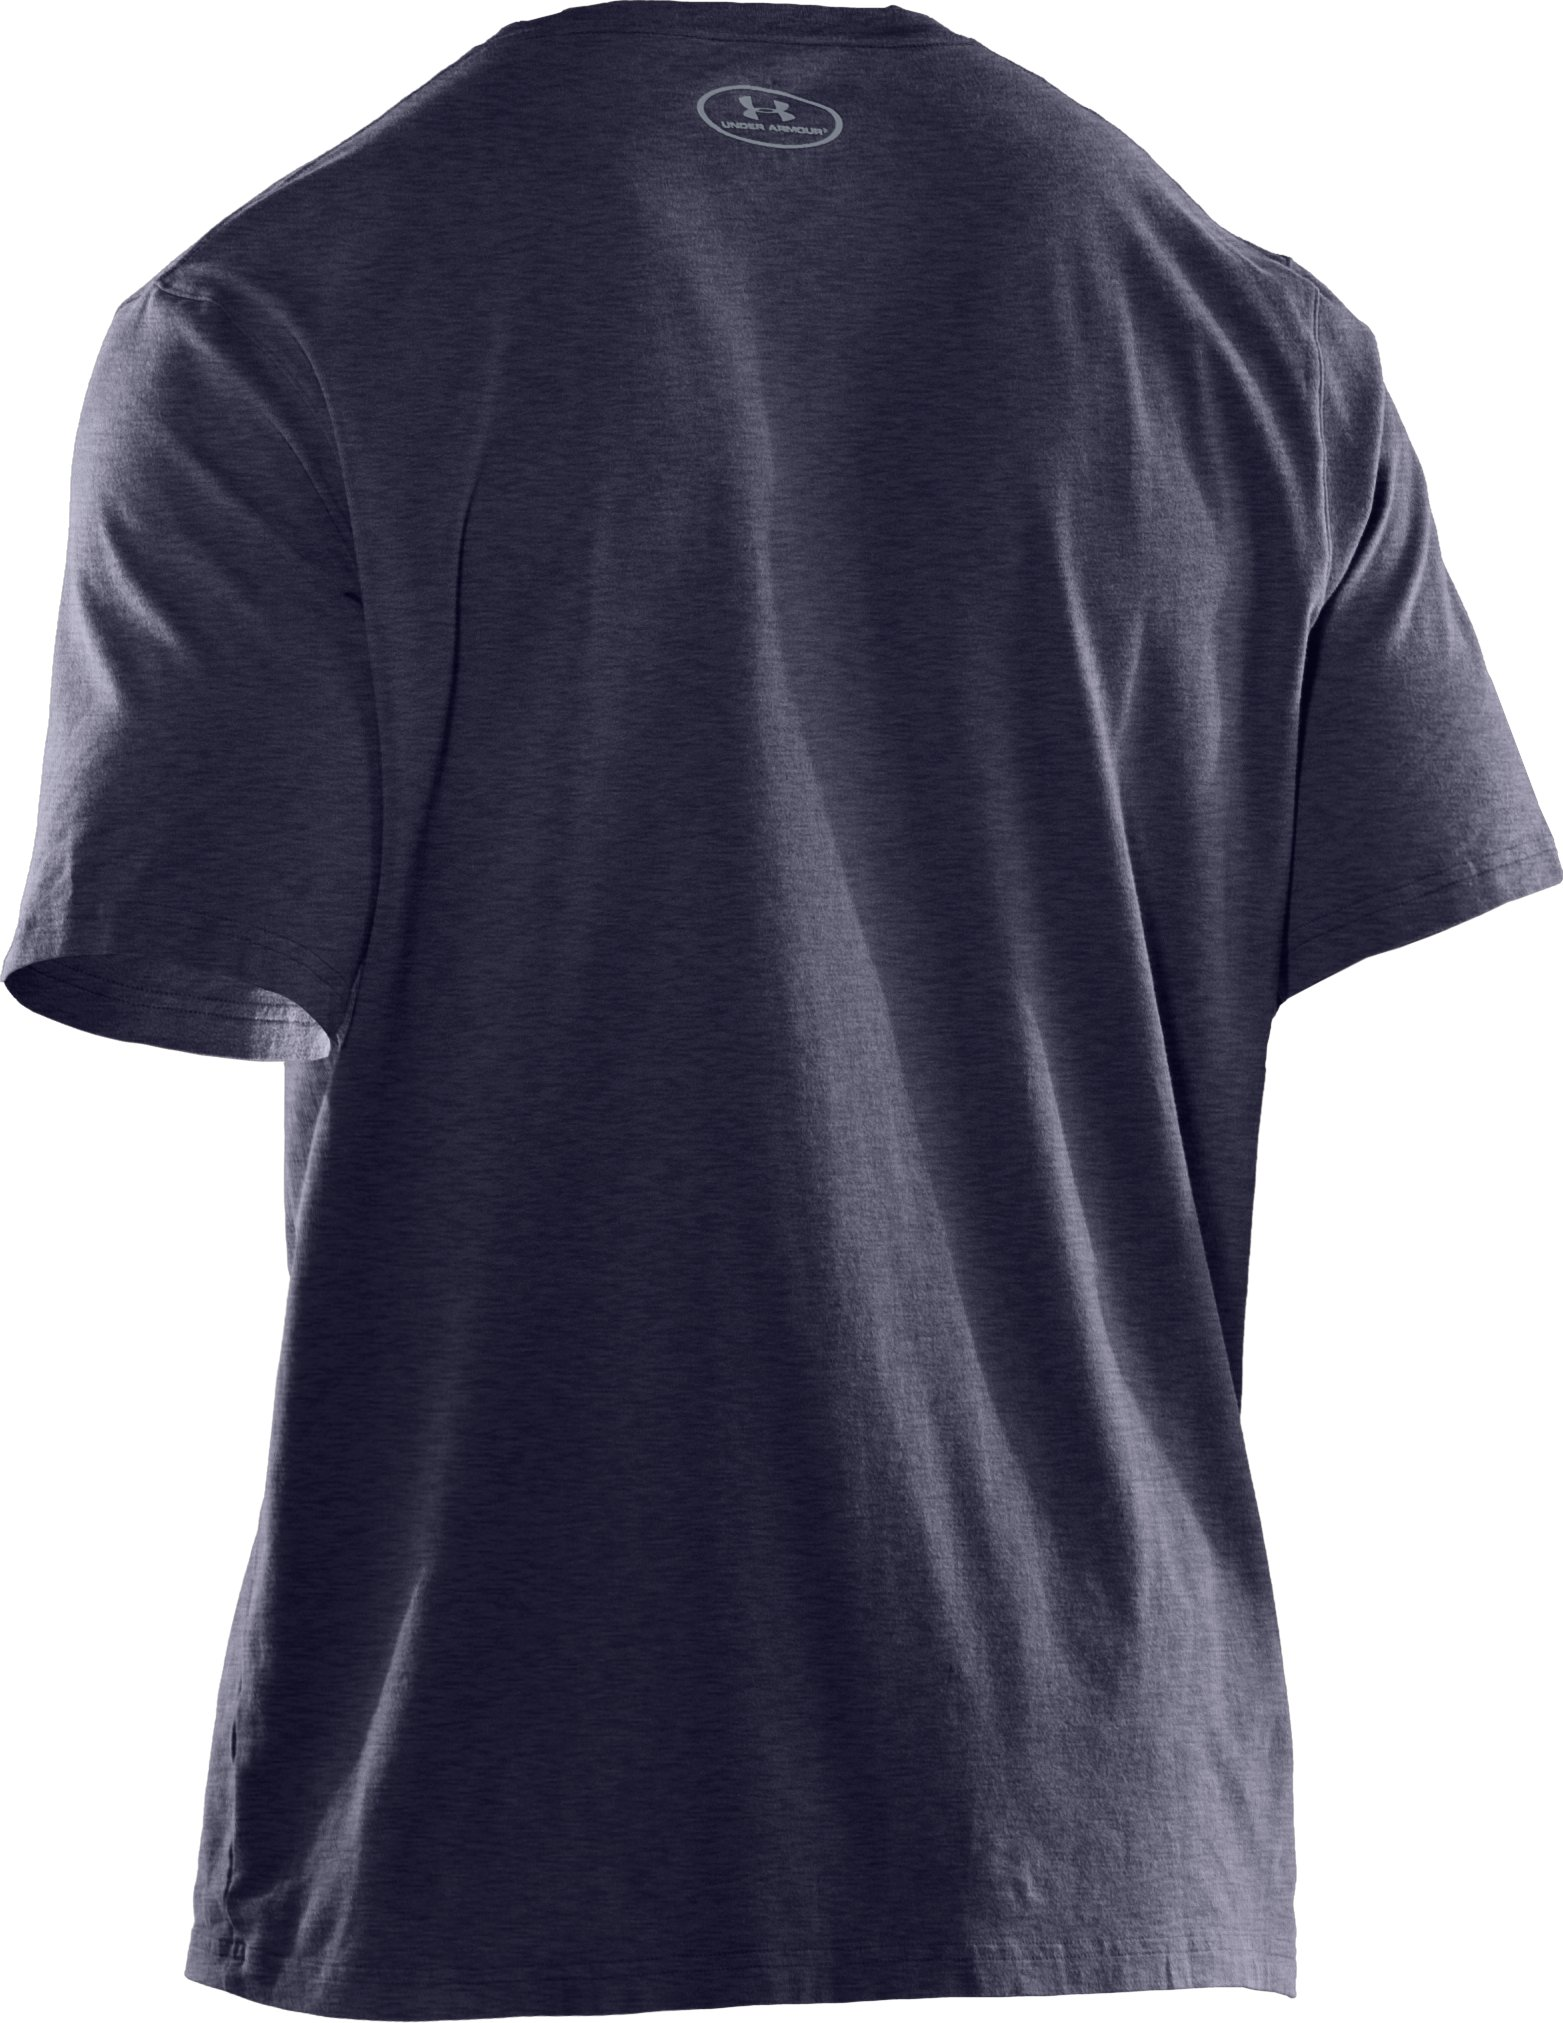 Men's Charged Cotton® T-Shirt, Midnight Navy, undefined